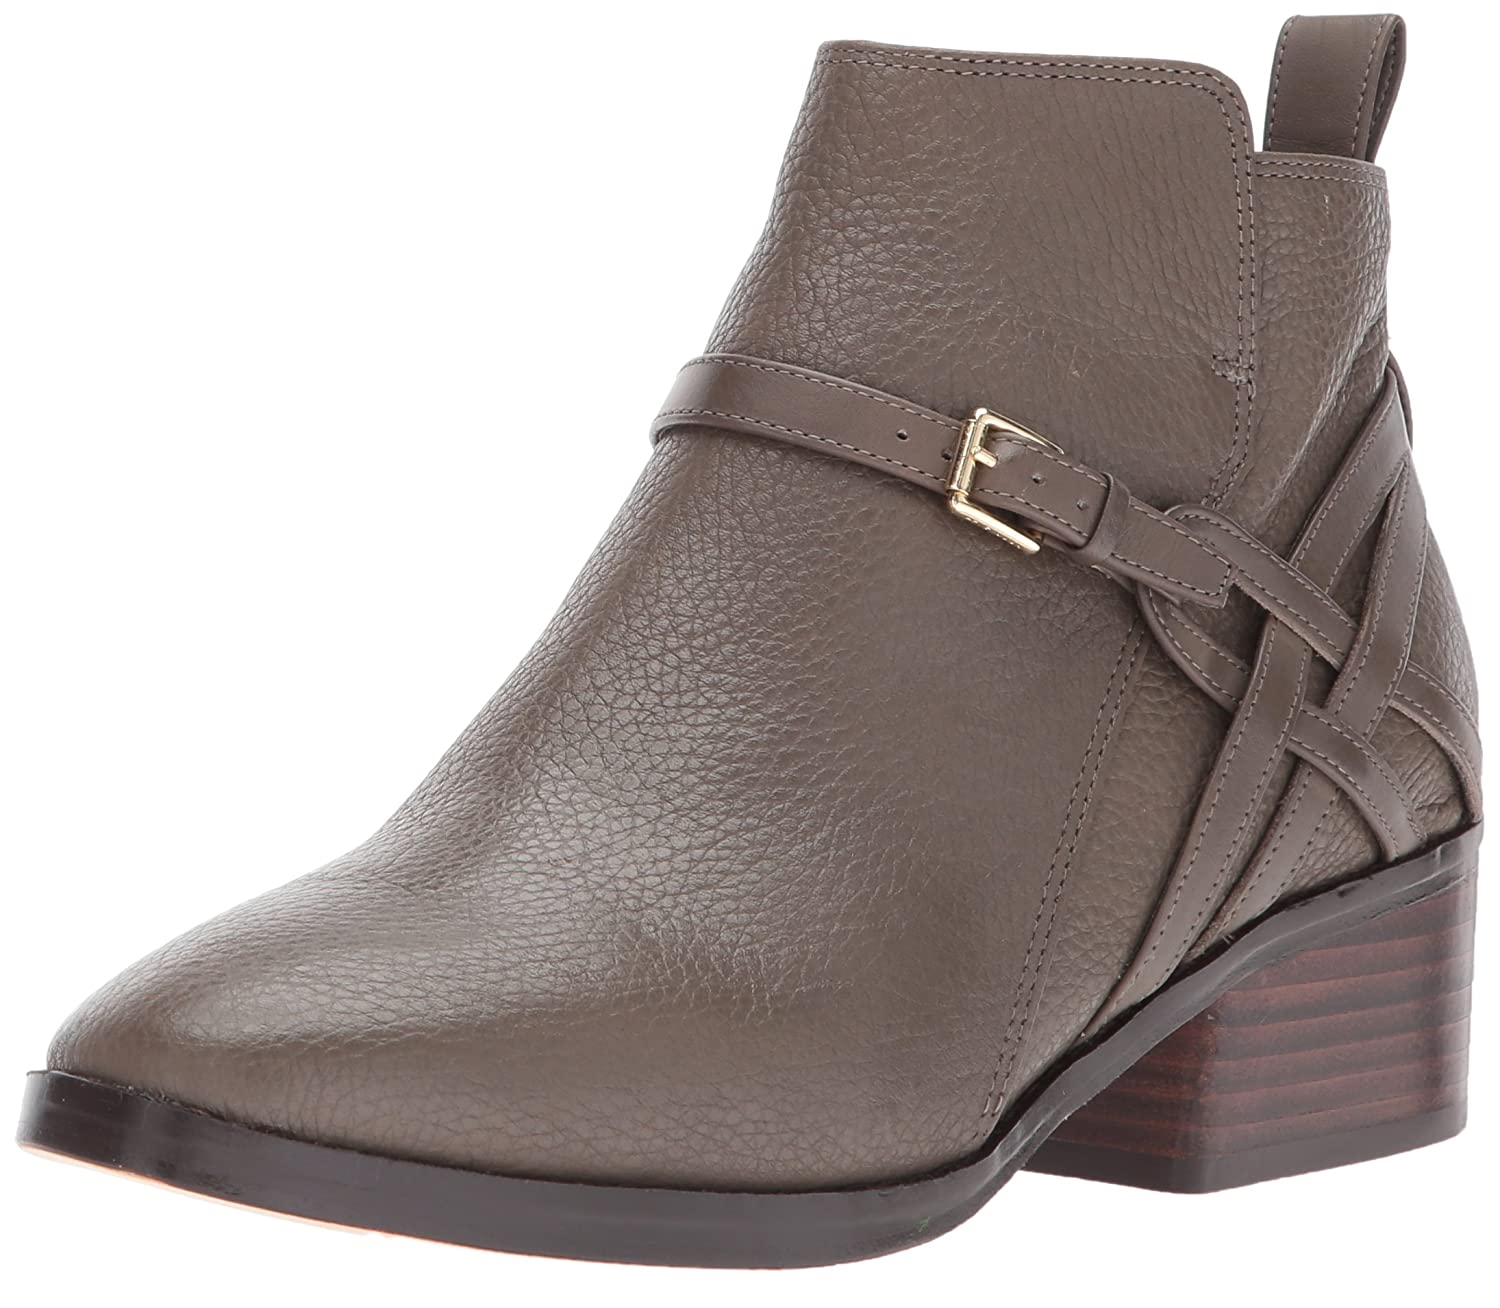 Cole Haan Women's Pearlie Bootie B071XDSK74 6.5 B(M) US|Morel Leather